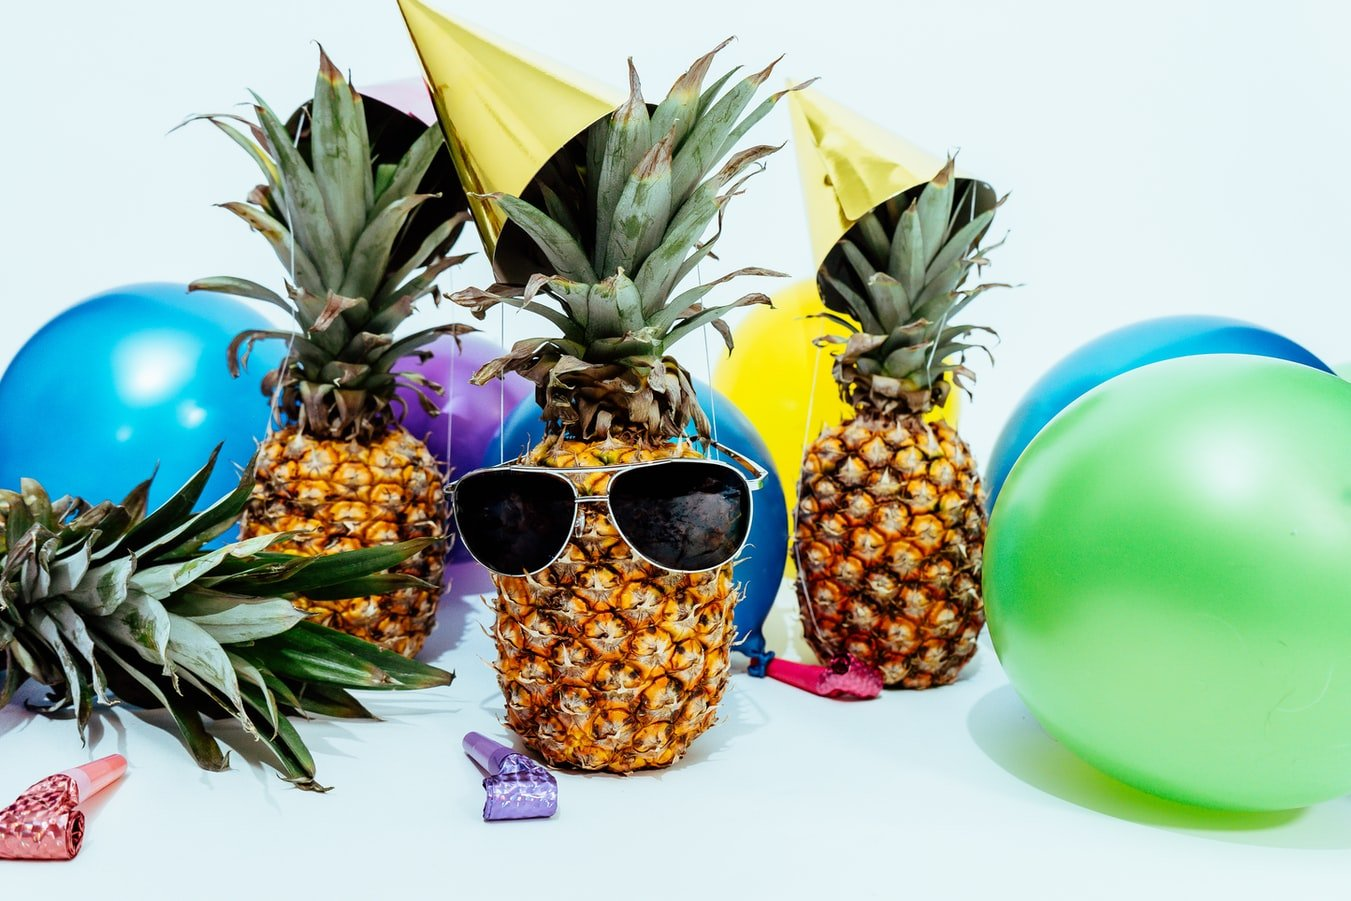 hree pineapples are at a party, surrounded by balloons with party hats on. The middle pineapple is rocking a pair of super cool sunglasses.